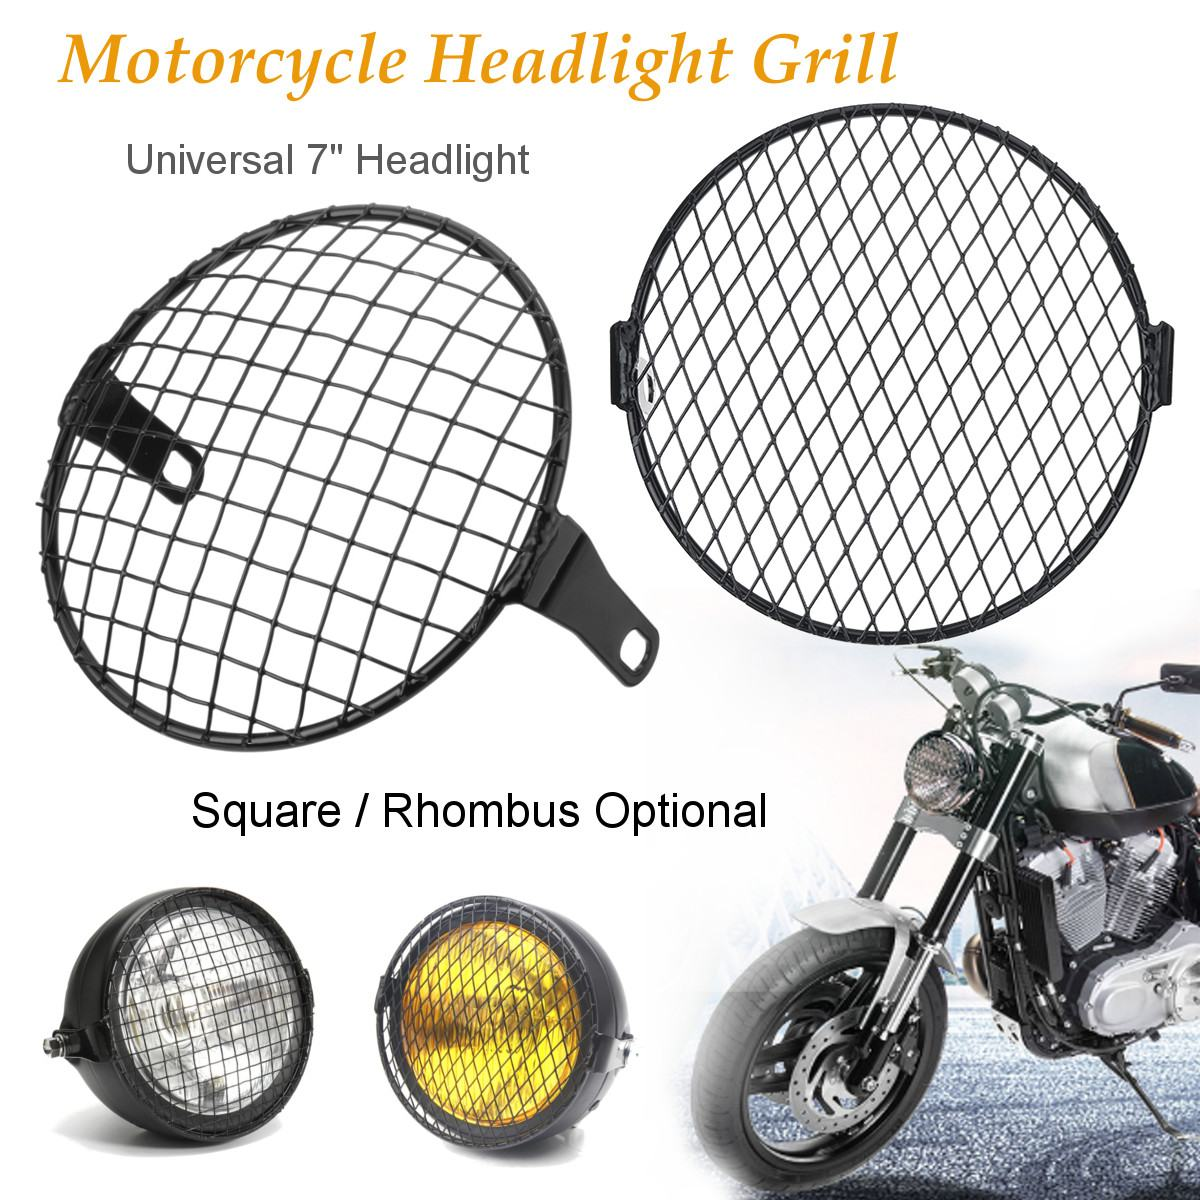 7inch Universal Motorcycle Front Headlight Lampshade Mesh Grill Mask Protector Guard Square/Rhombus Cover